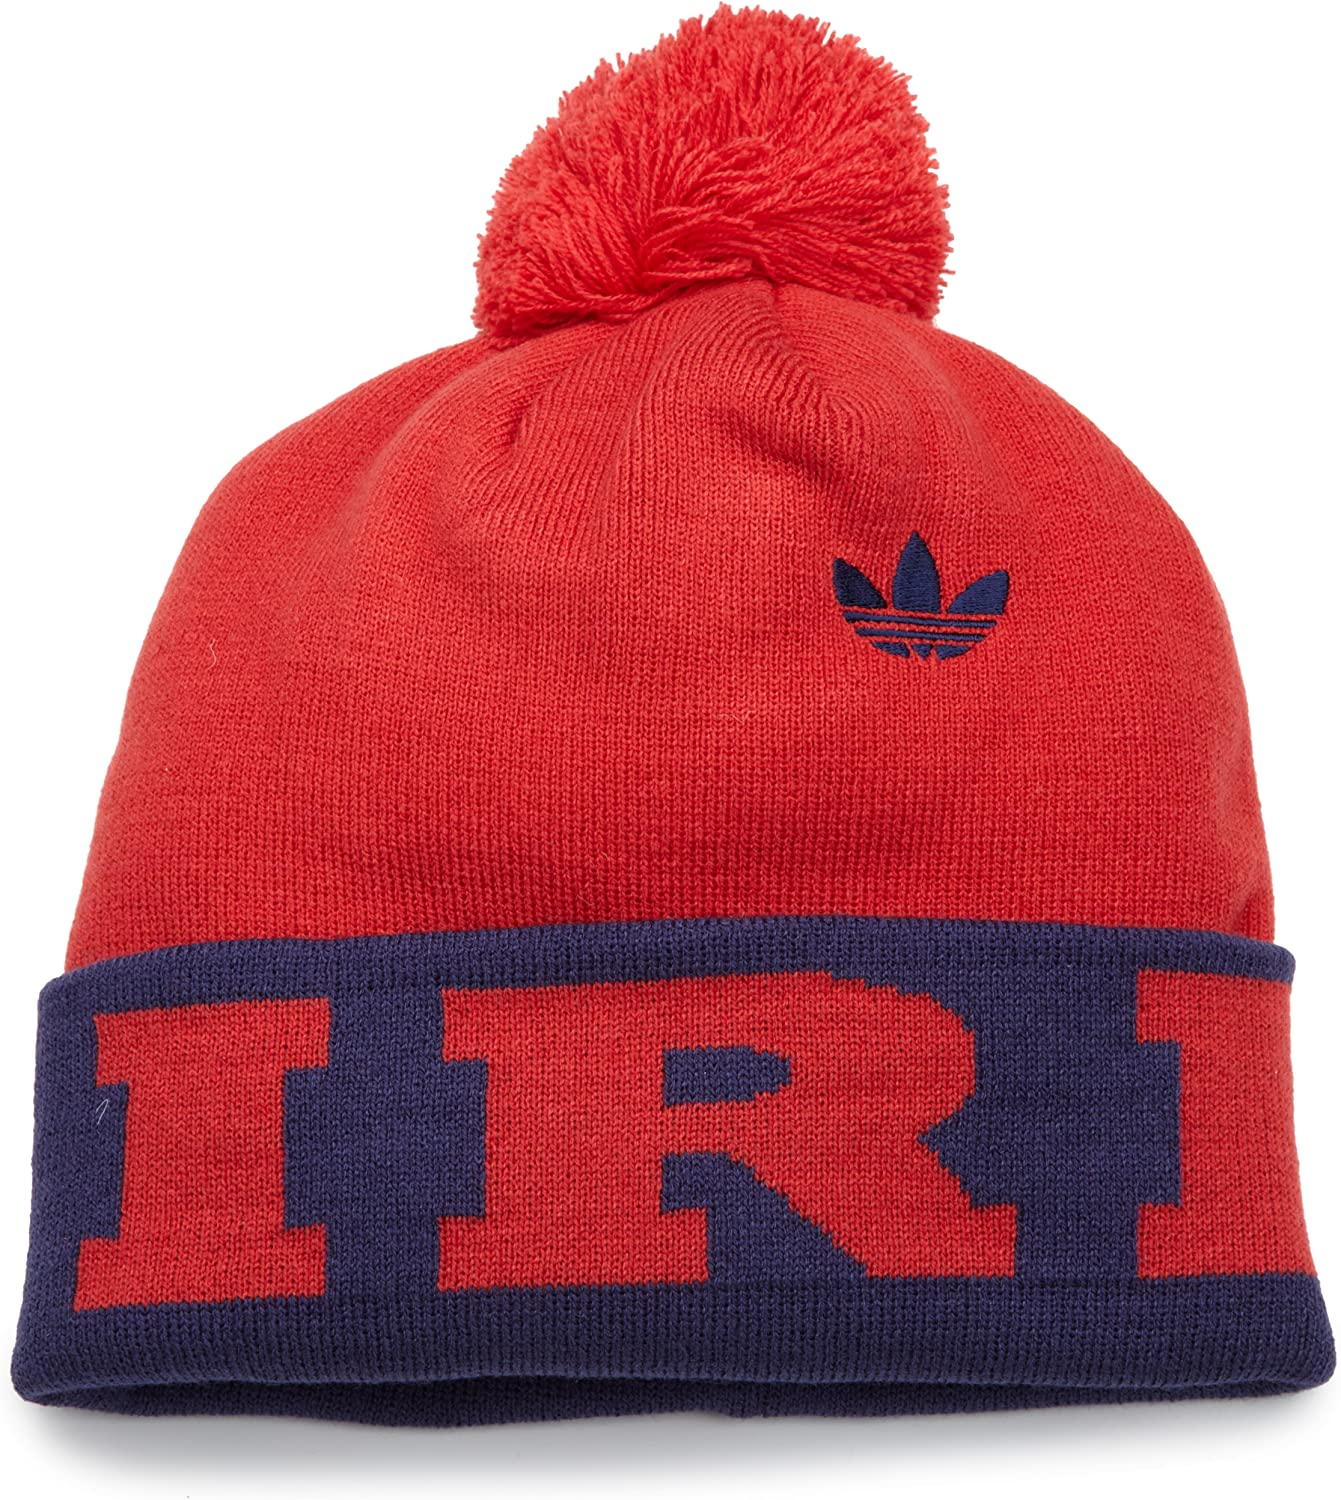 Cuffed Pom Knit Hat One Size Fits All Red MLS Chicago Fire